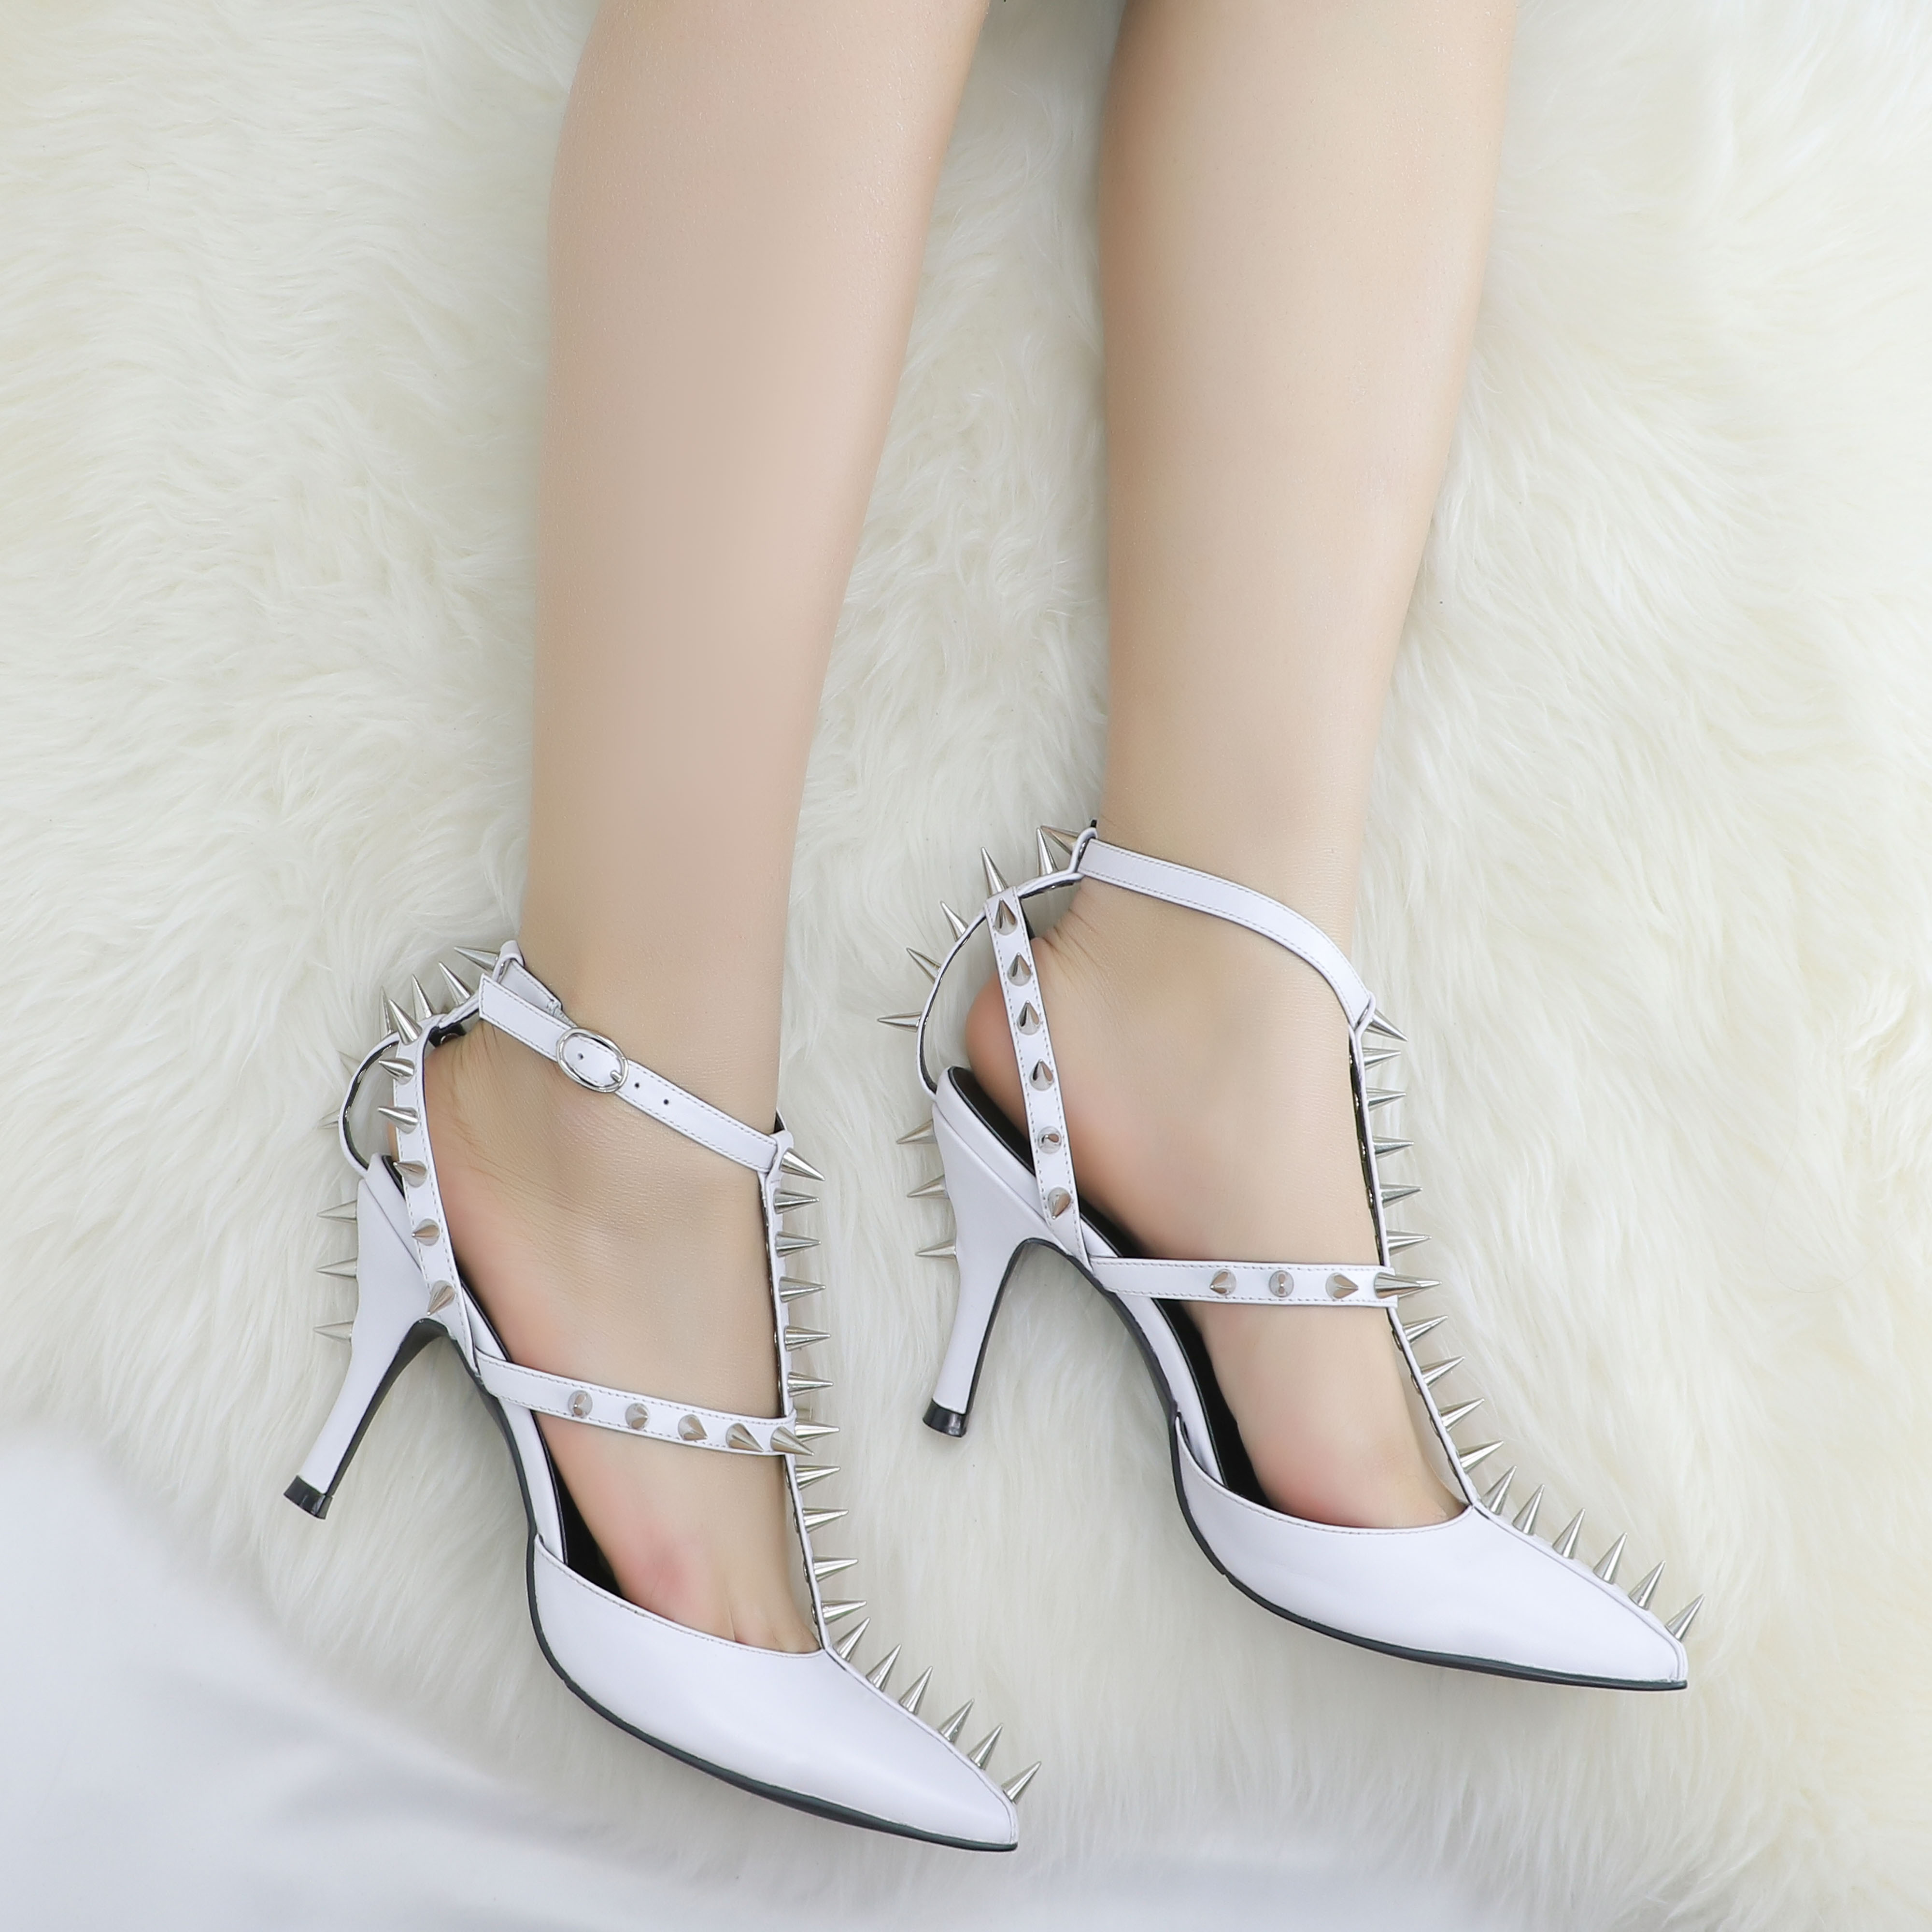 Roni Bouker White Genuine Leather Shoes Women Mid Heel Studded Pumps Fashion Sexy Strappy Heels Spikes Shoe HandmadeRoni Bouker White Genuine Leather Shoes Women Mid Heel Studded Pumps Fashion Sexy Strappy Heels Spikes Shoe Handmade